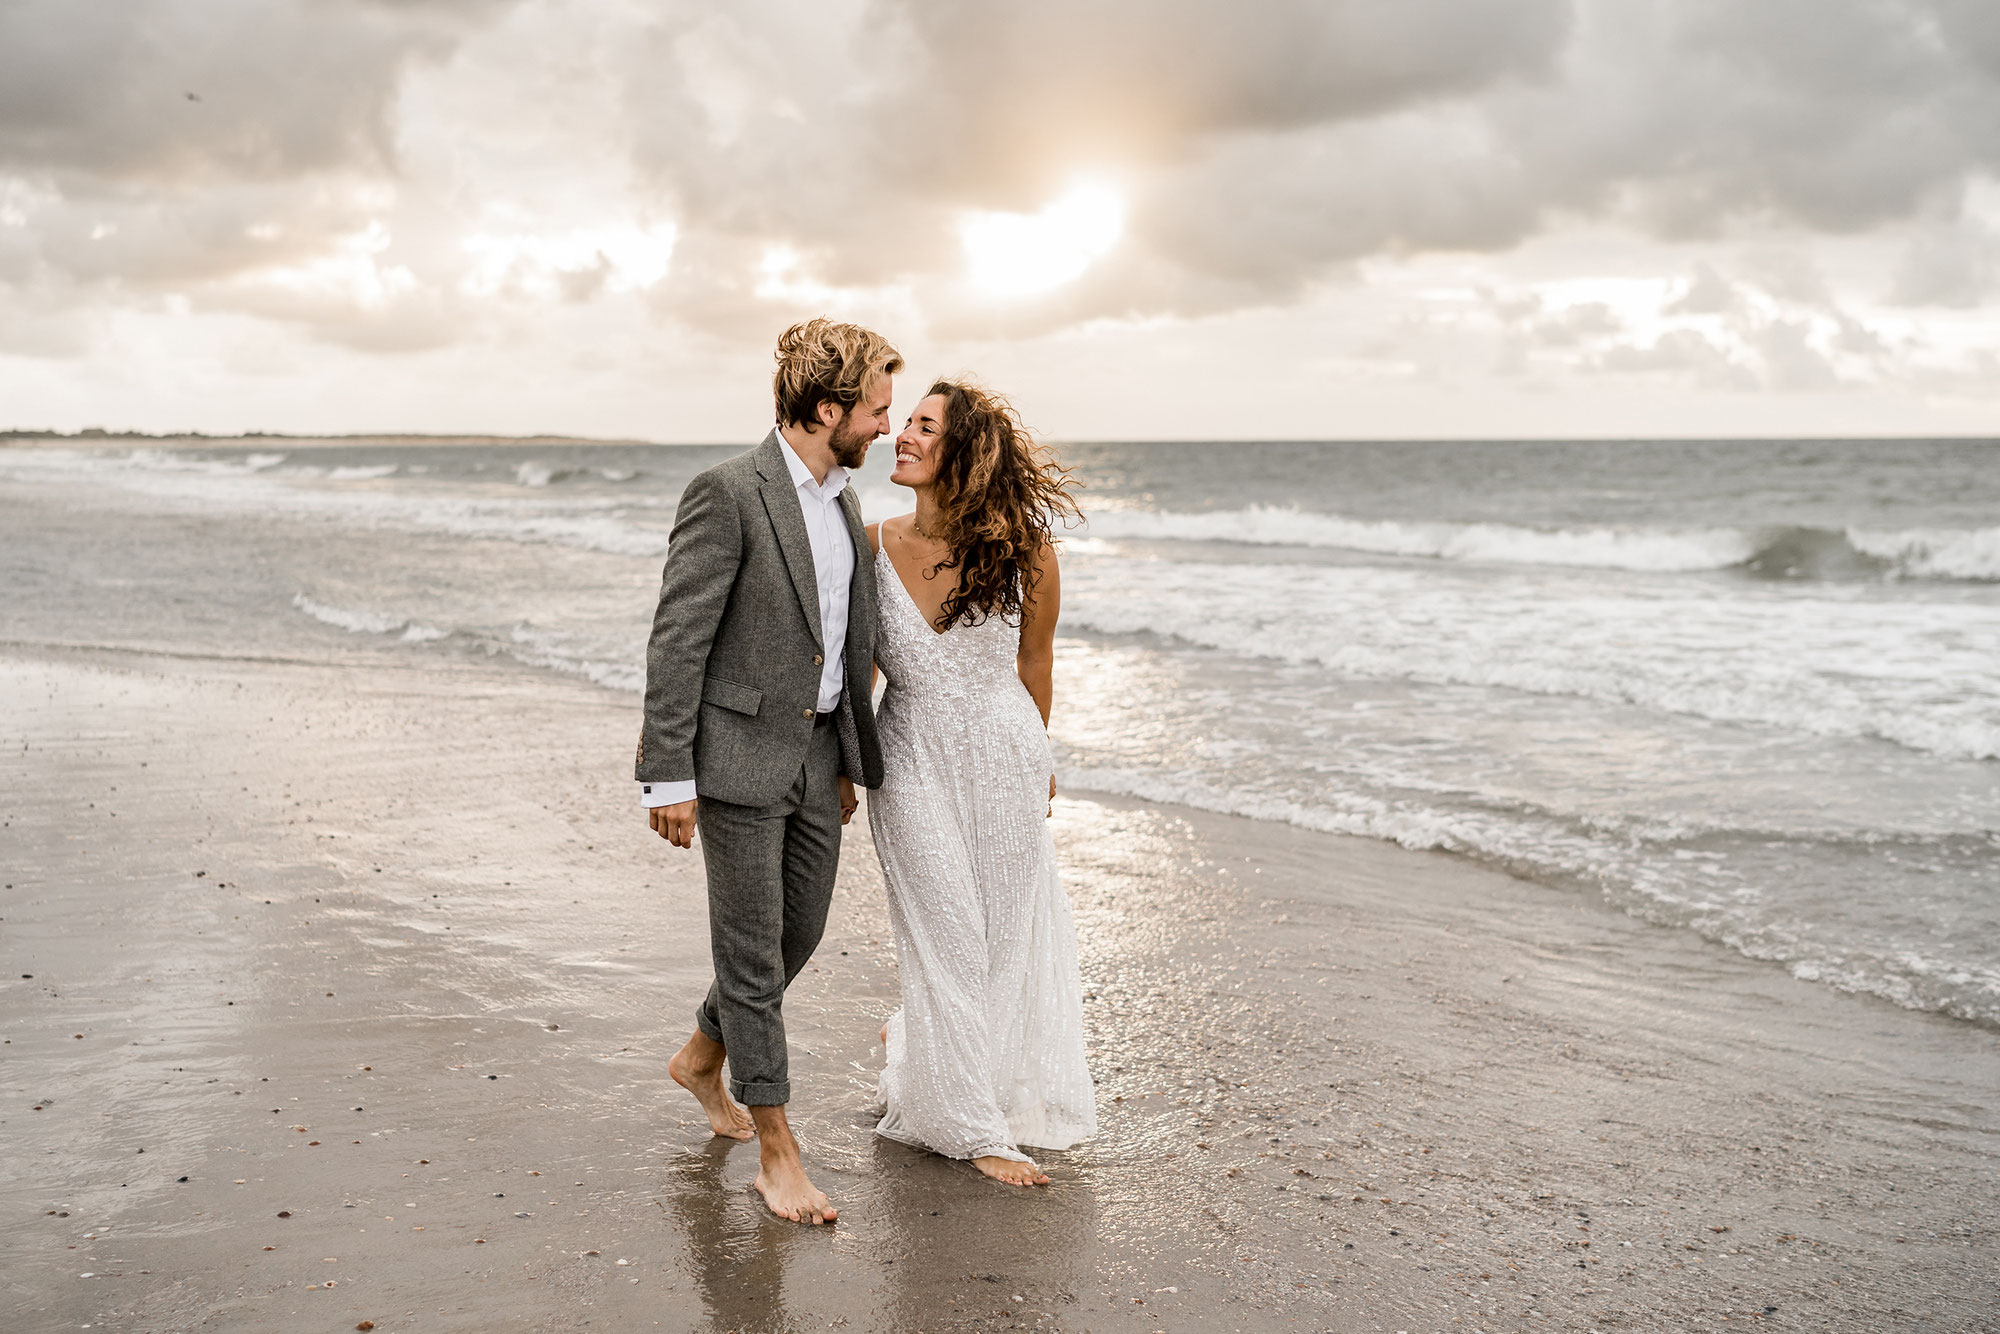 Ream & Dany - After Wedding Inspiration in Holland